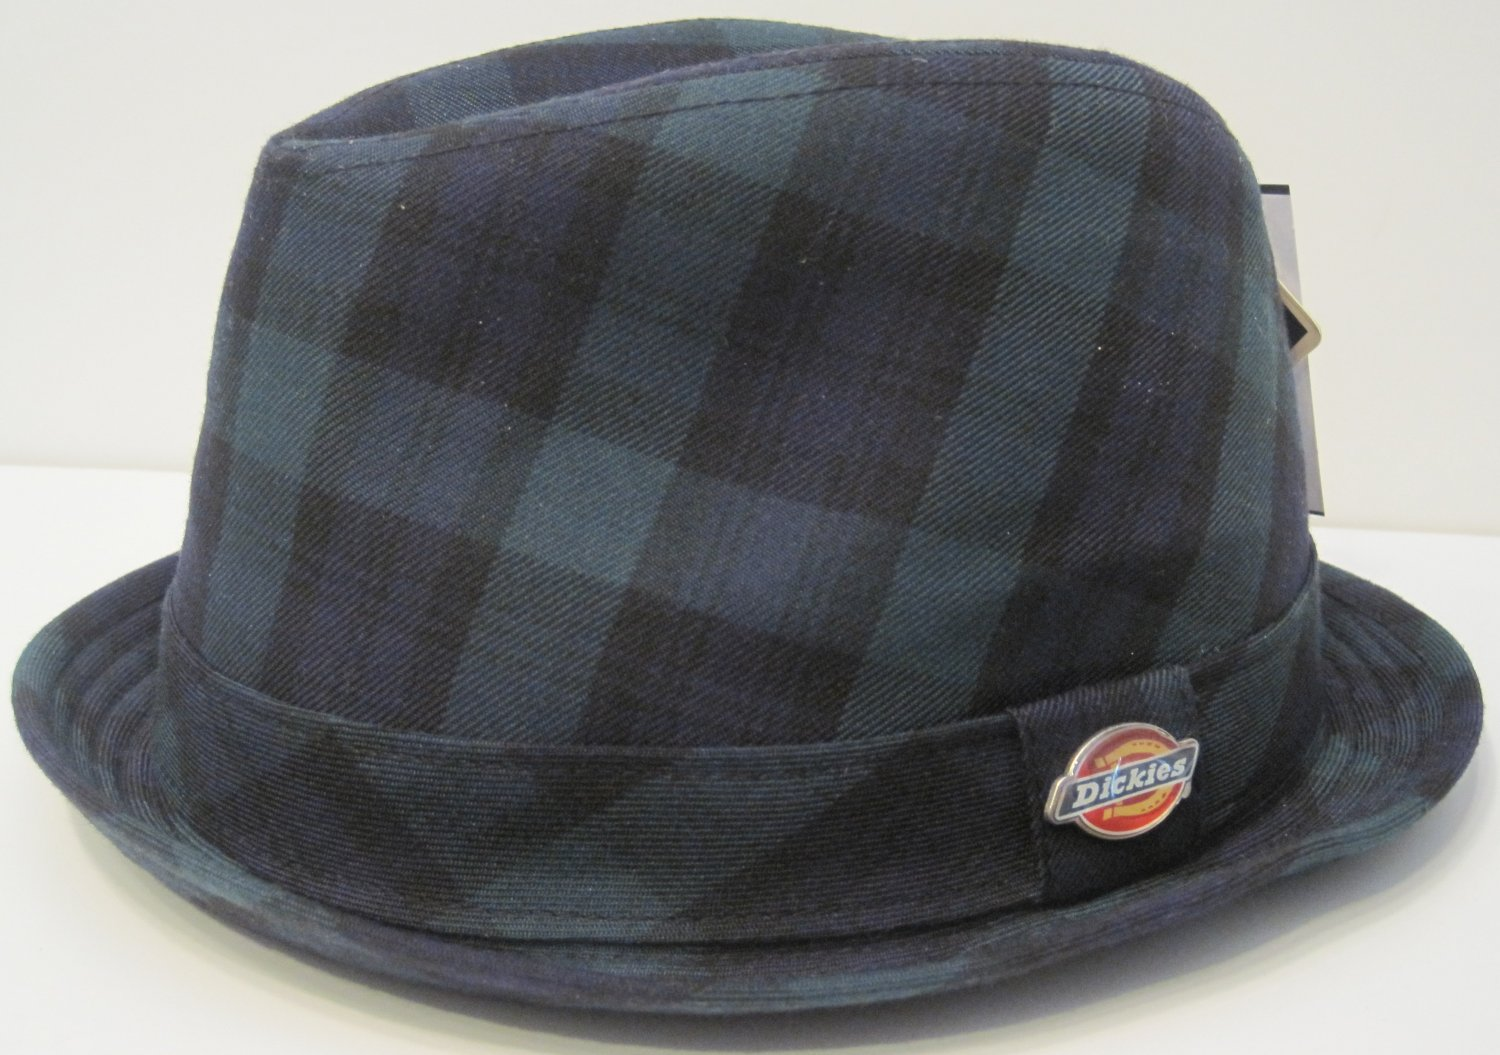 Dickies WorkWear Clothes Flannel Plaid Fedora Hat S/M